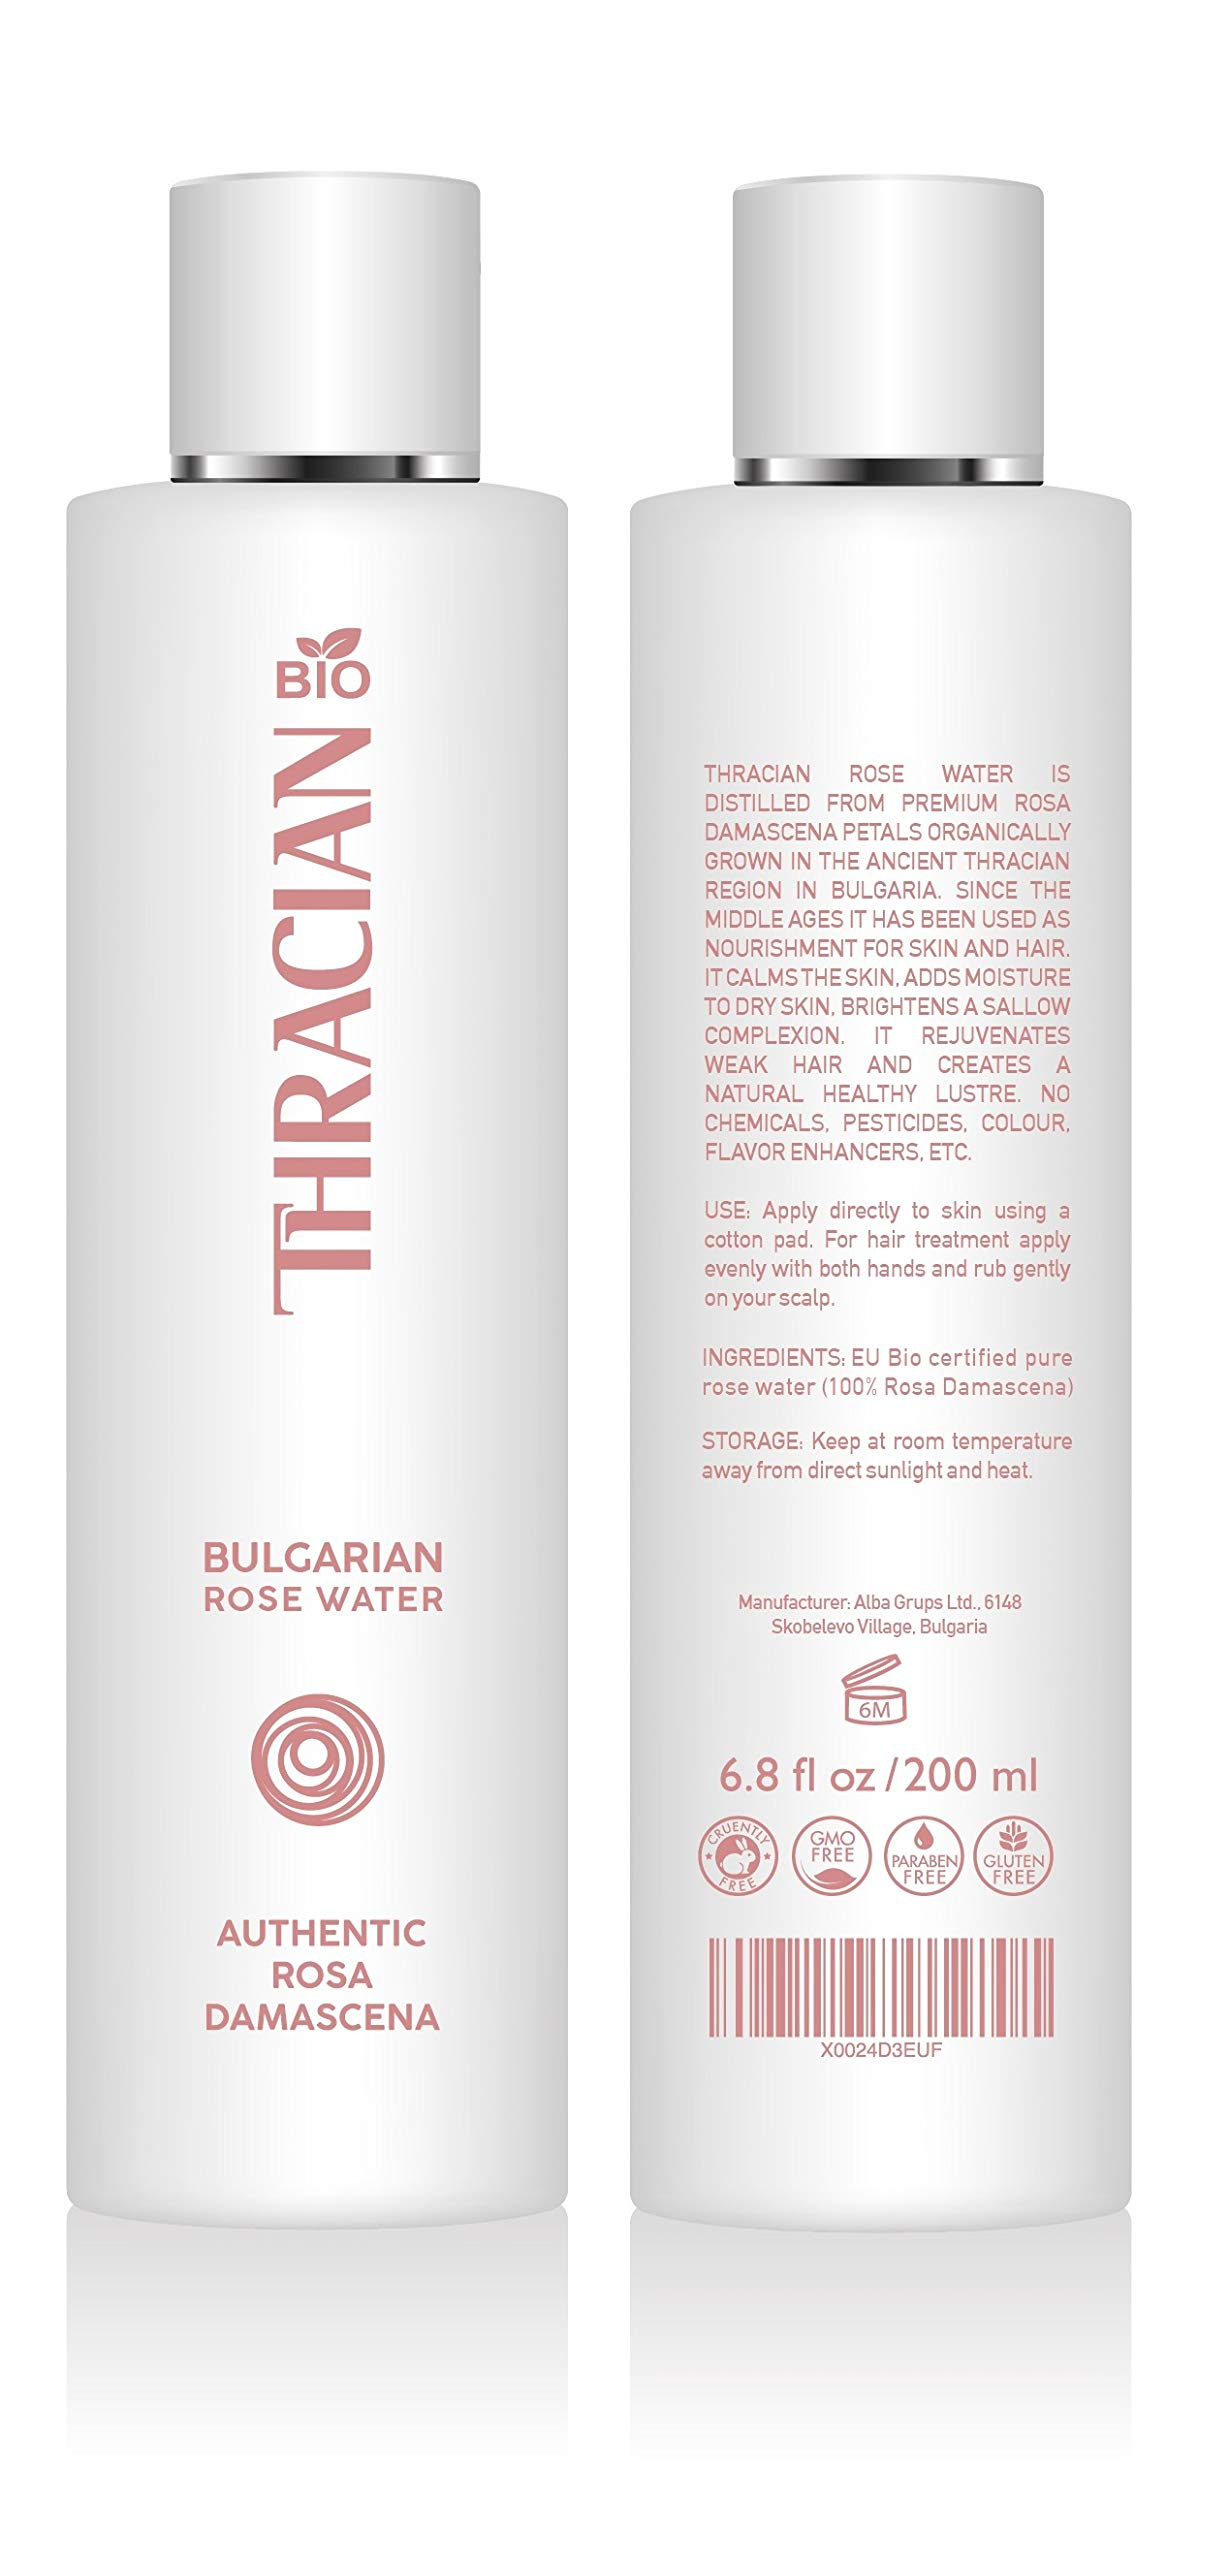 Thracian BIO 100% Pure Bulgarian Rose Floral Water, Skin and Hair Toner, 6.8 Fl oz, 200 ml, Distilled in Bulgaria, No Added Fragrance, Vegan, Cruelty-Free, Responsibly Sourced and Alcohol Free